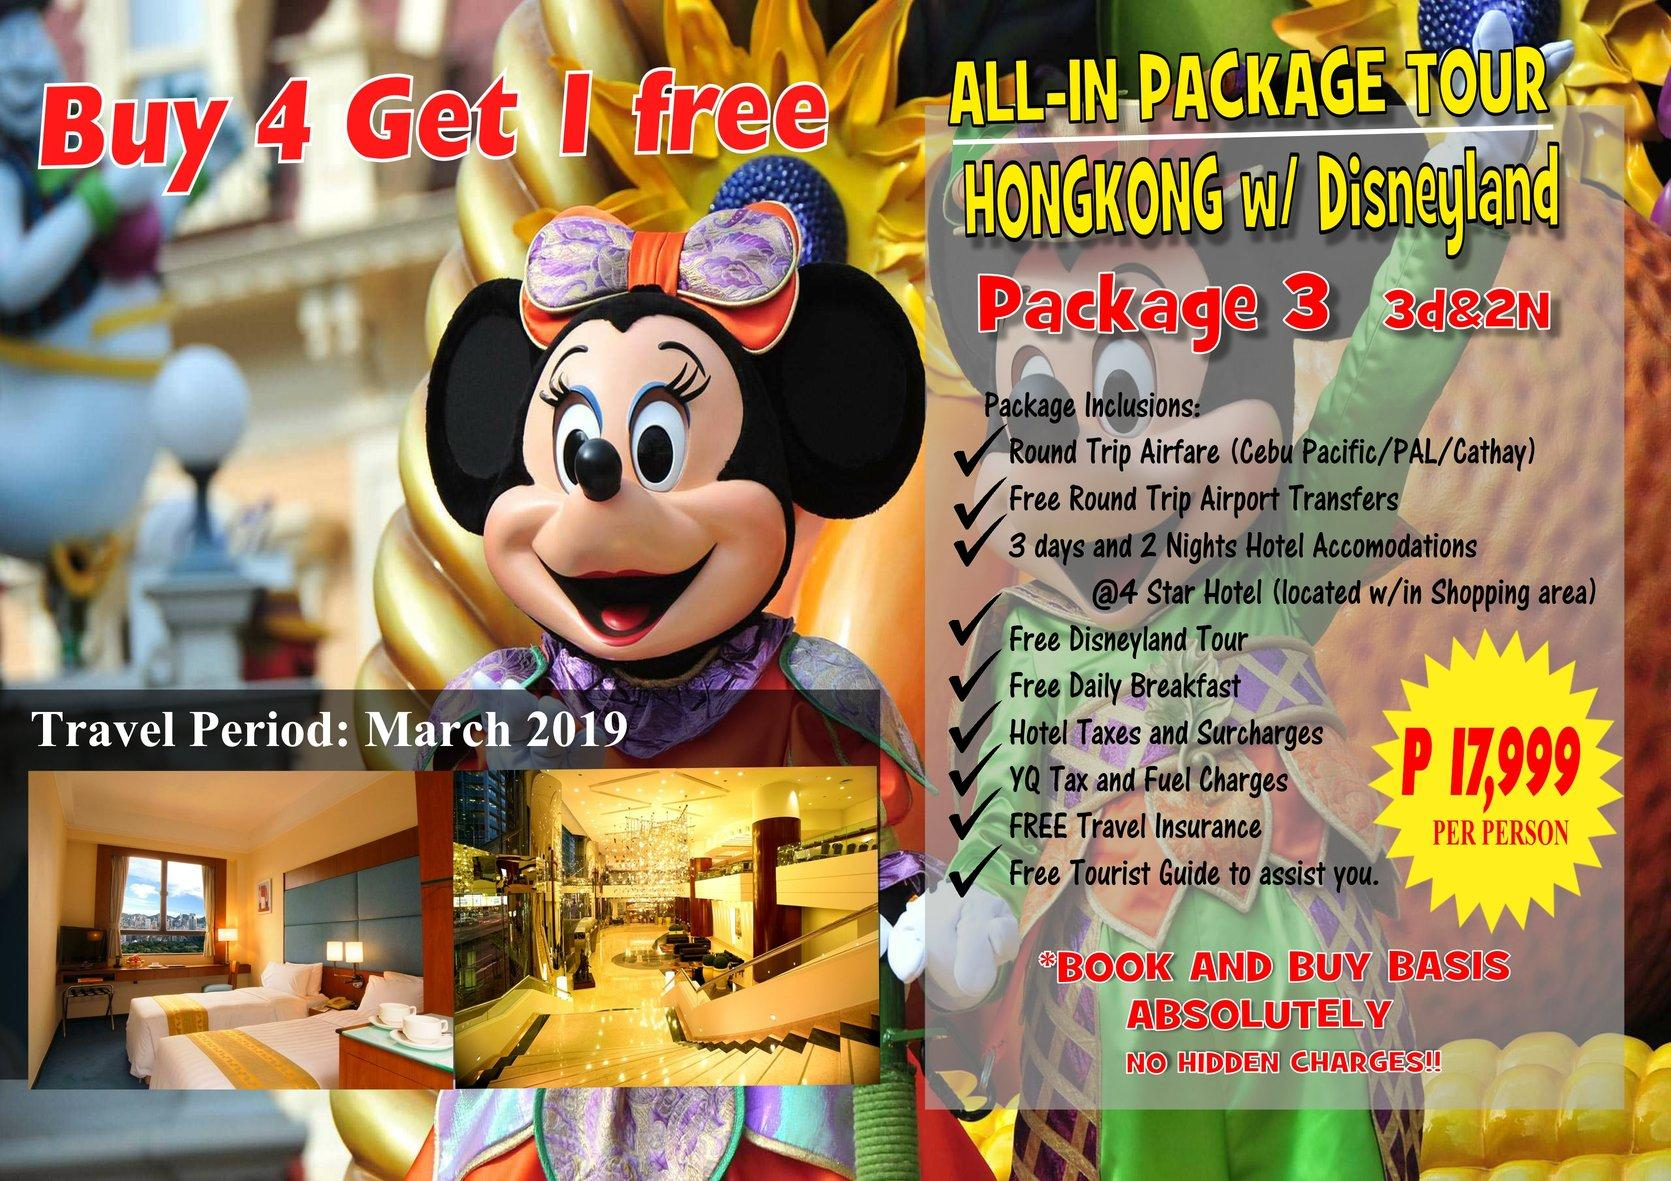 Tour Package Deals For Sale Coupons Code Discount Voucher Disneyland Hongkong Travel And Tours All In W Buy 4 Get 1